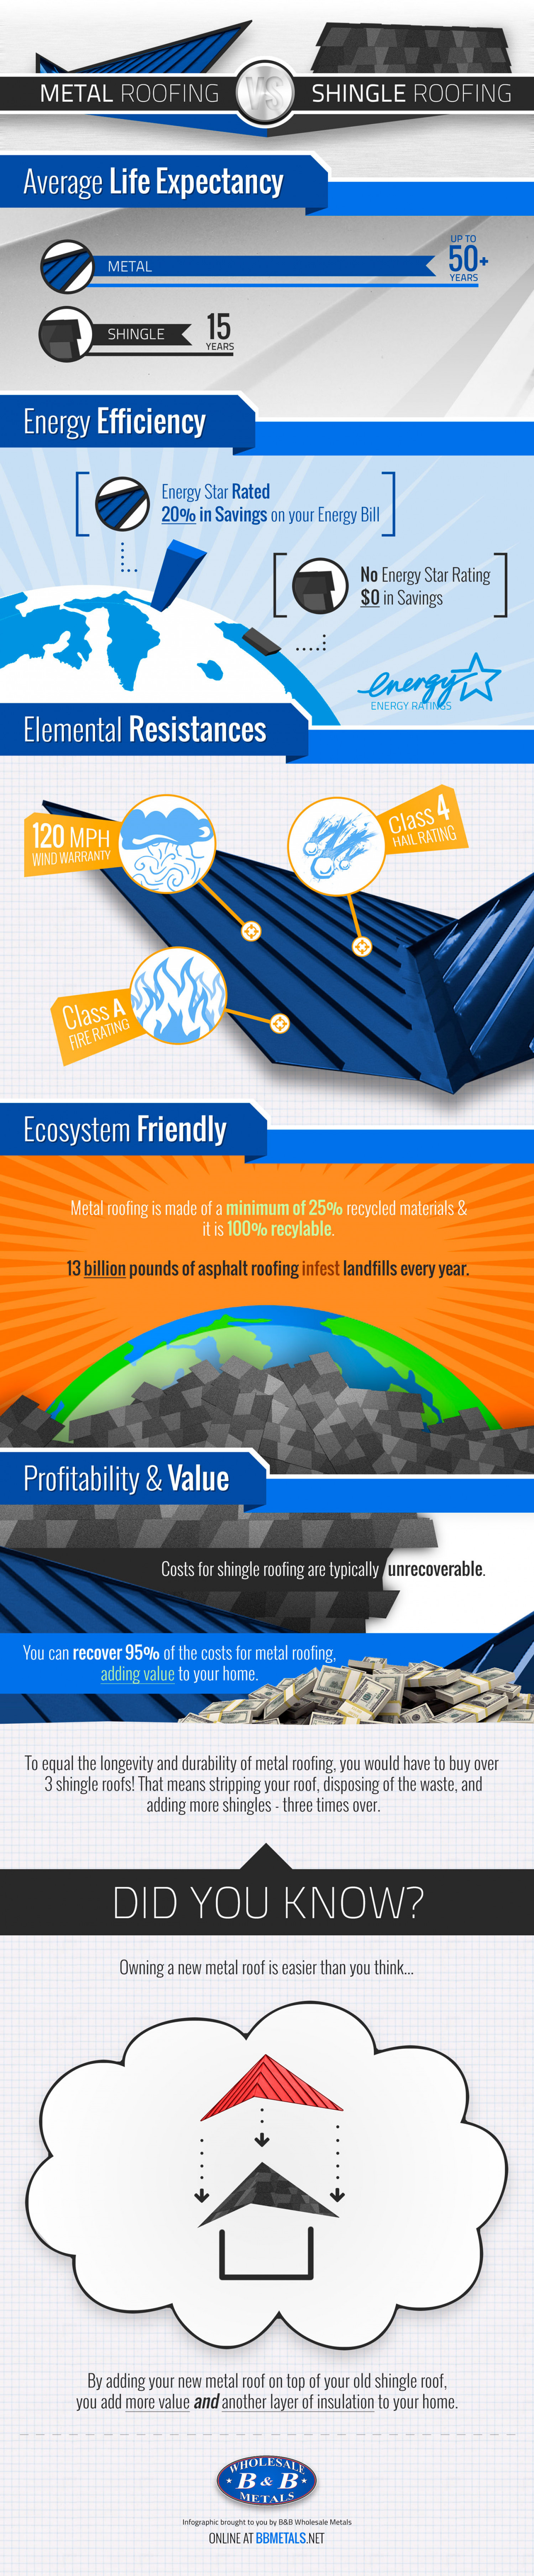 Metal Roofing vs Shingle Roofing Infographic